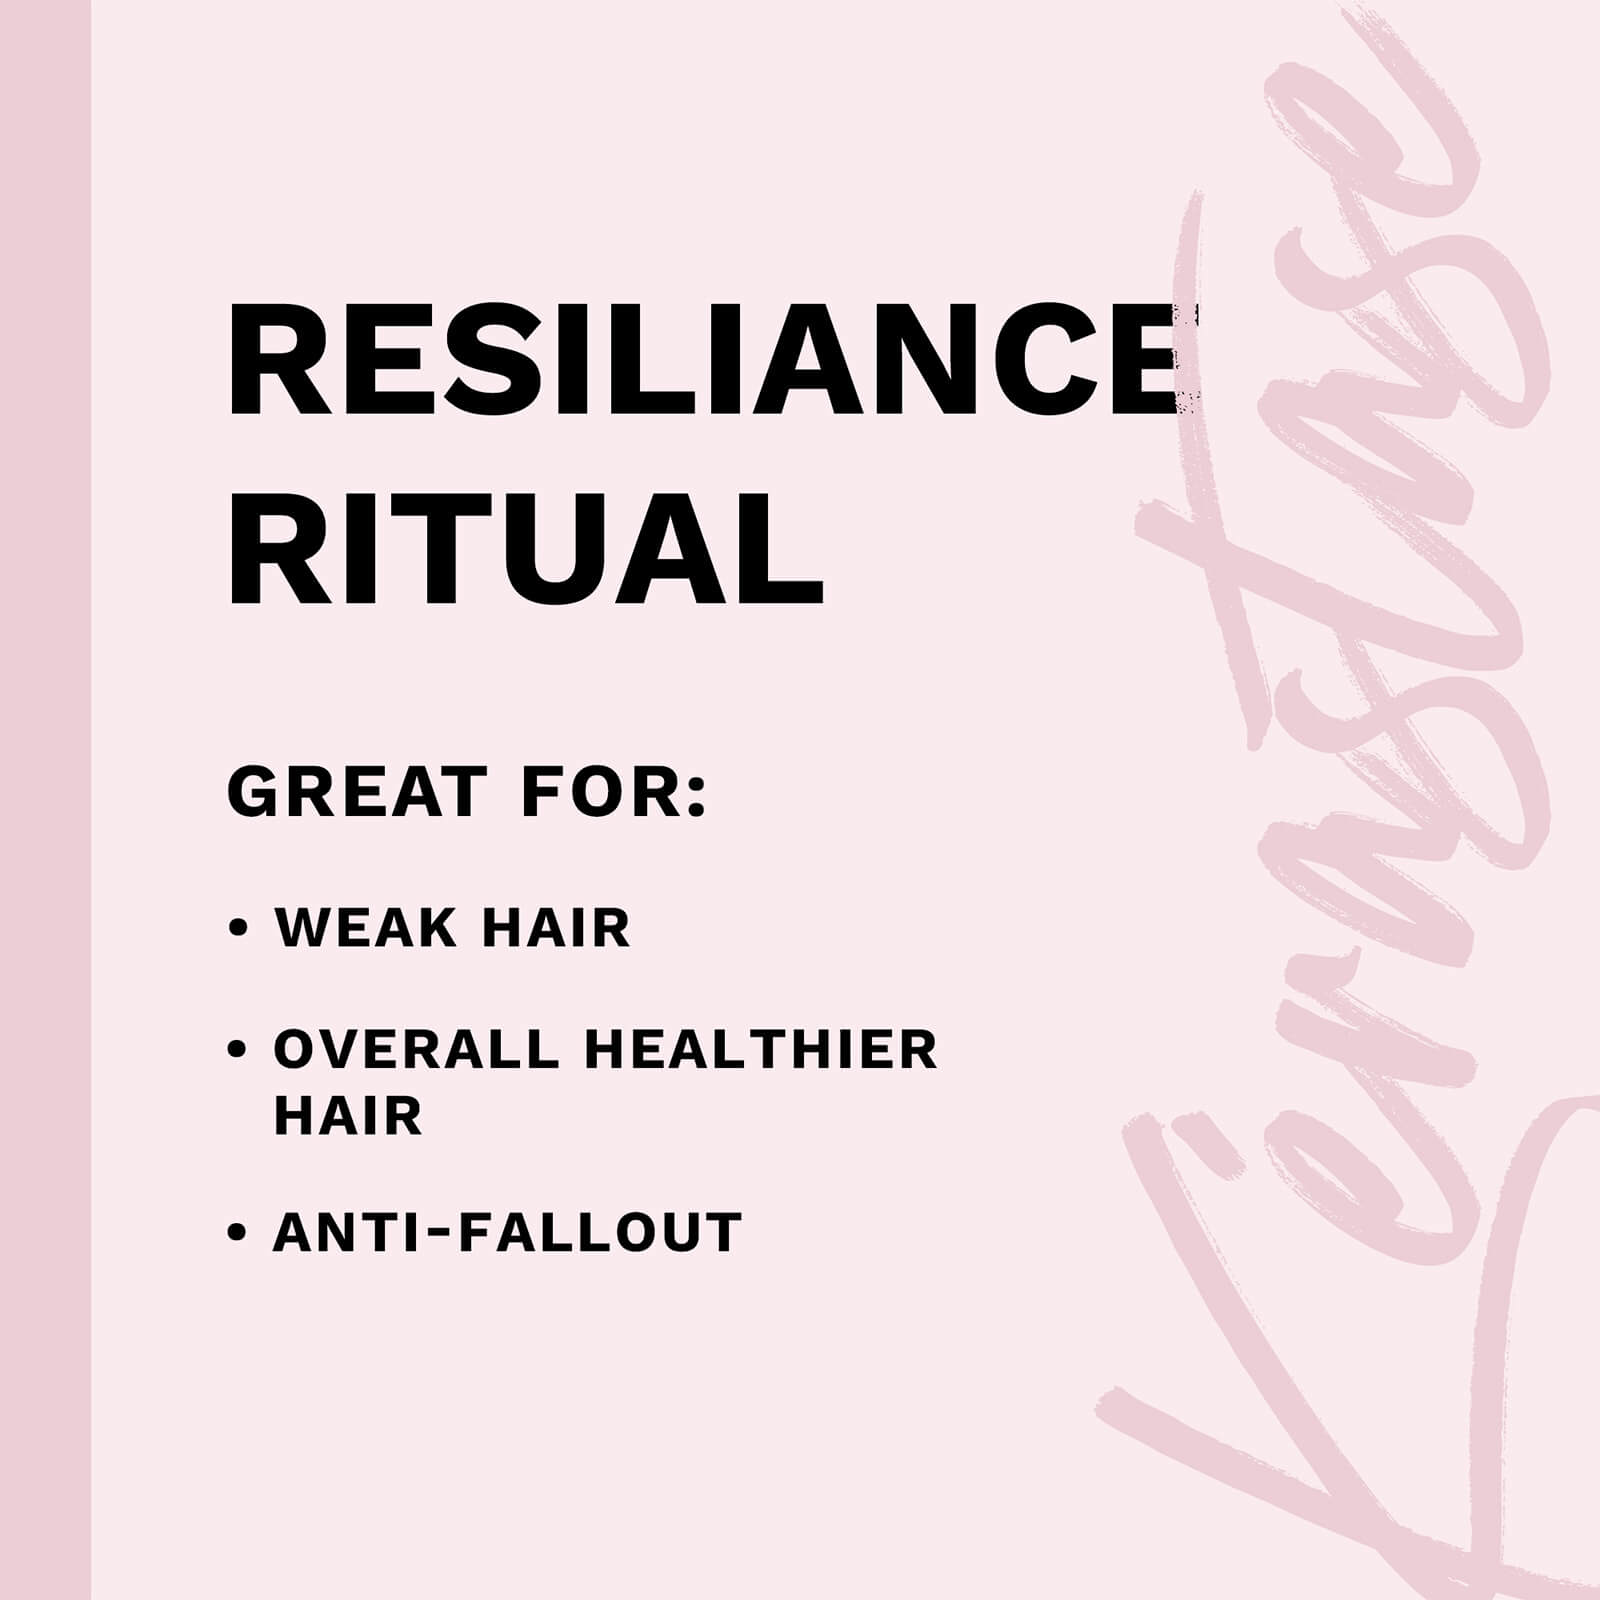 LOOKFANTASTIC x Kérastase Limited Edition Beauty Boxes (Each worth over £58) - Kérastase Resilience Ritual Limited Edition Box